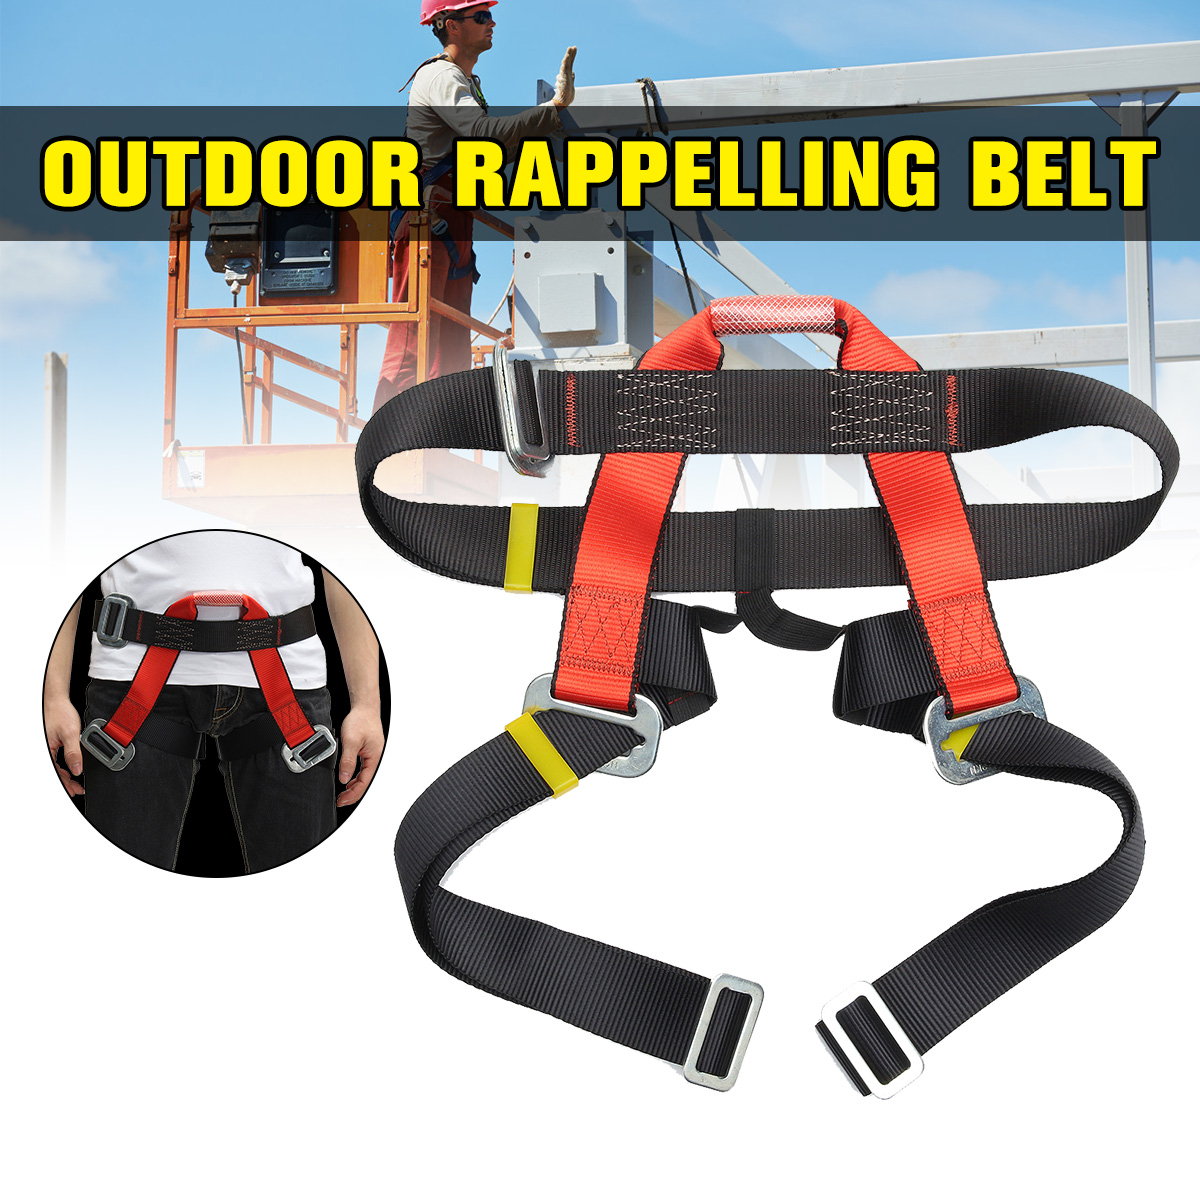 Outdoor Climbing Safety Belt Half Body Protecting For Rock Climbing Downhill Harnesses Rappel Belt Safety Climbing Accessories